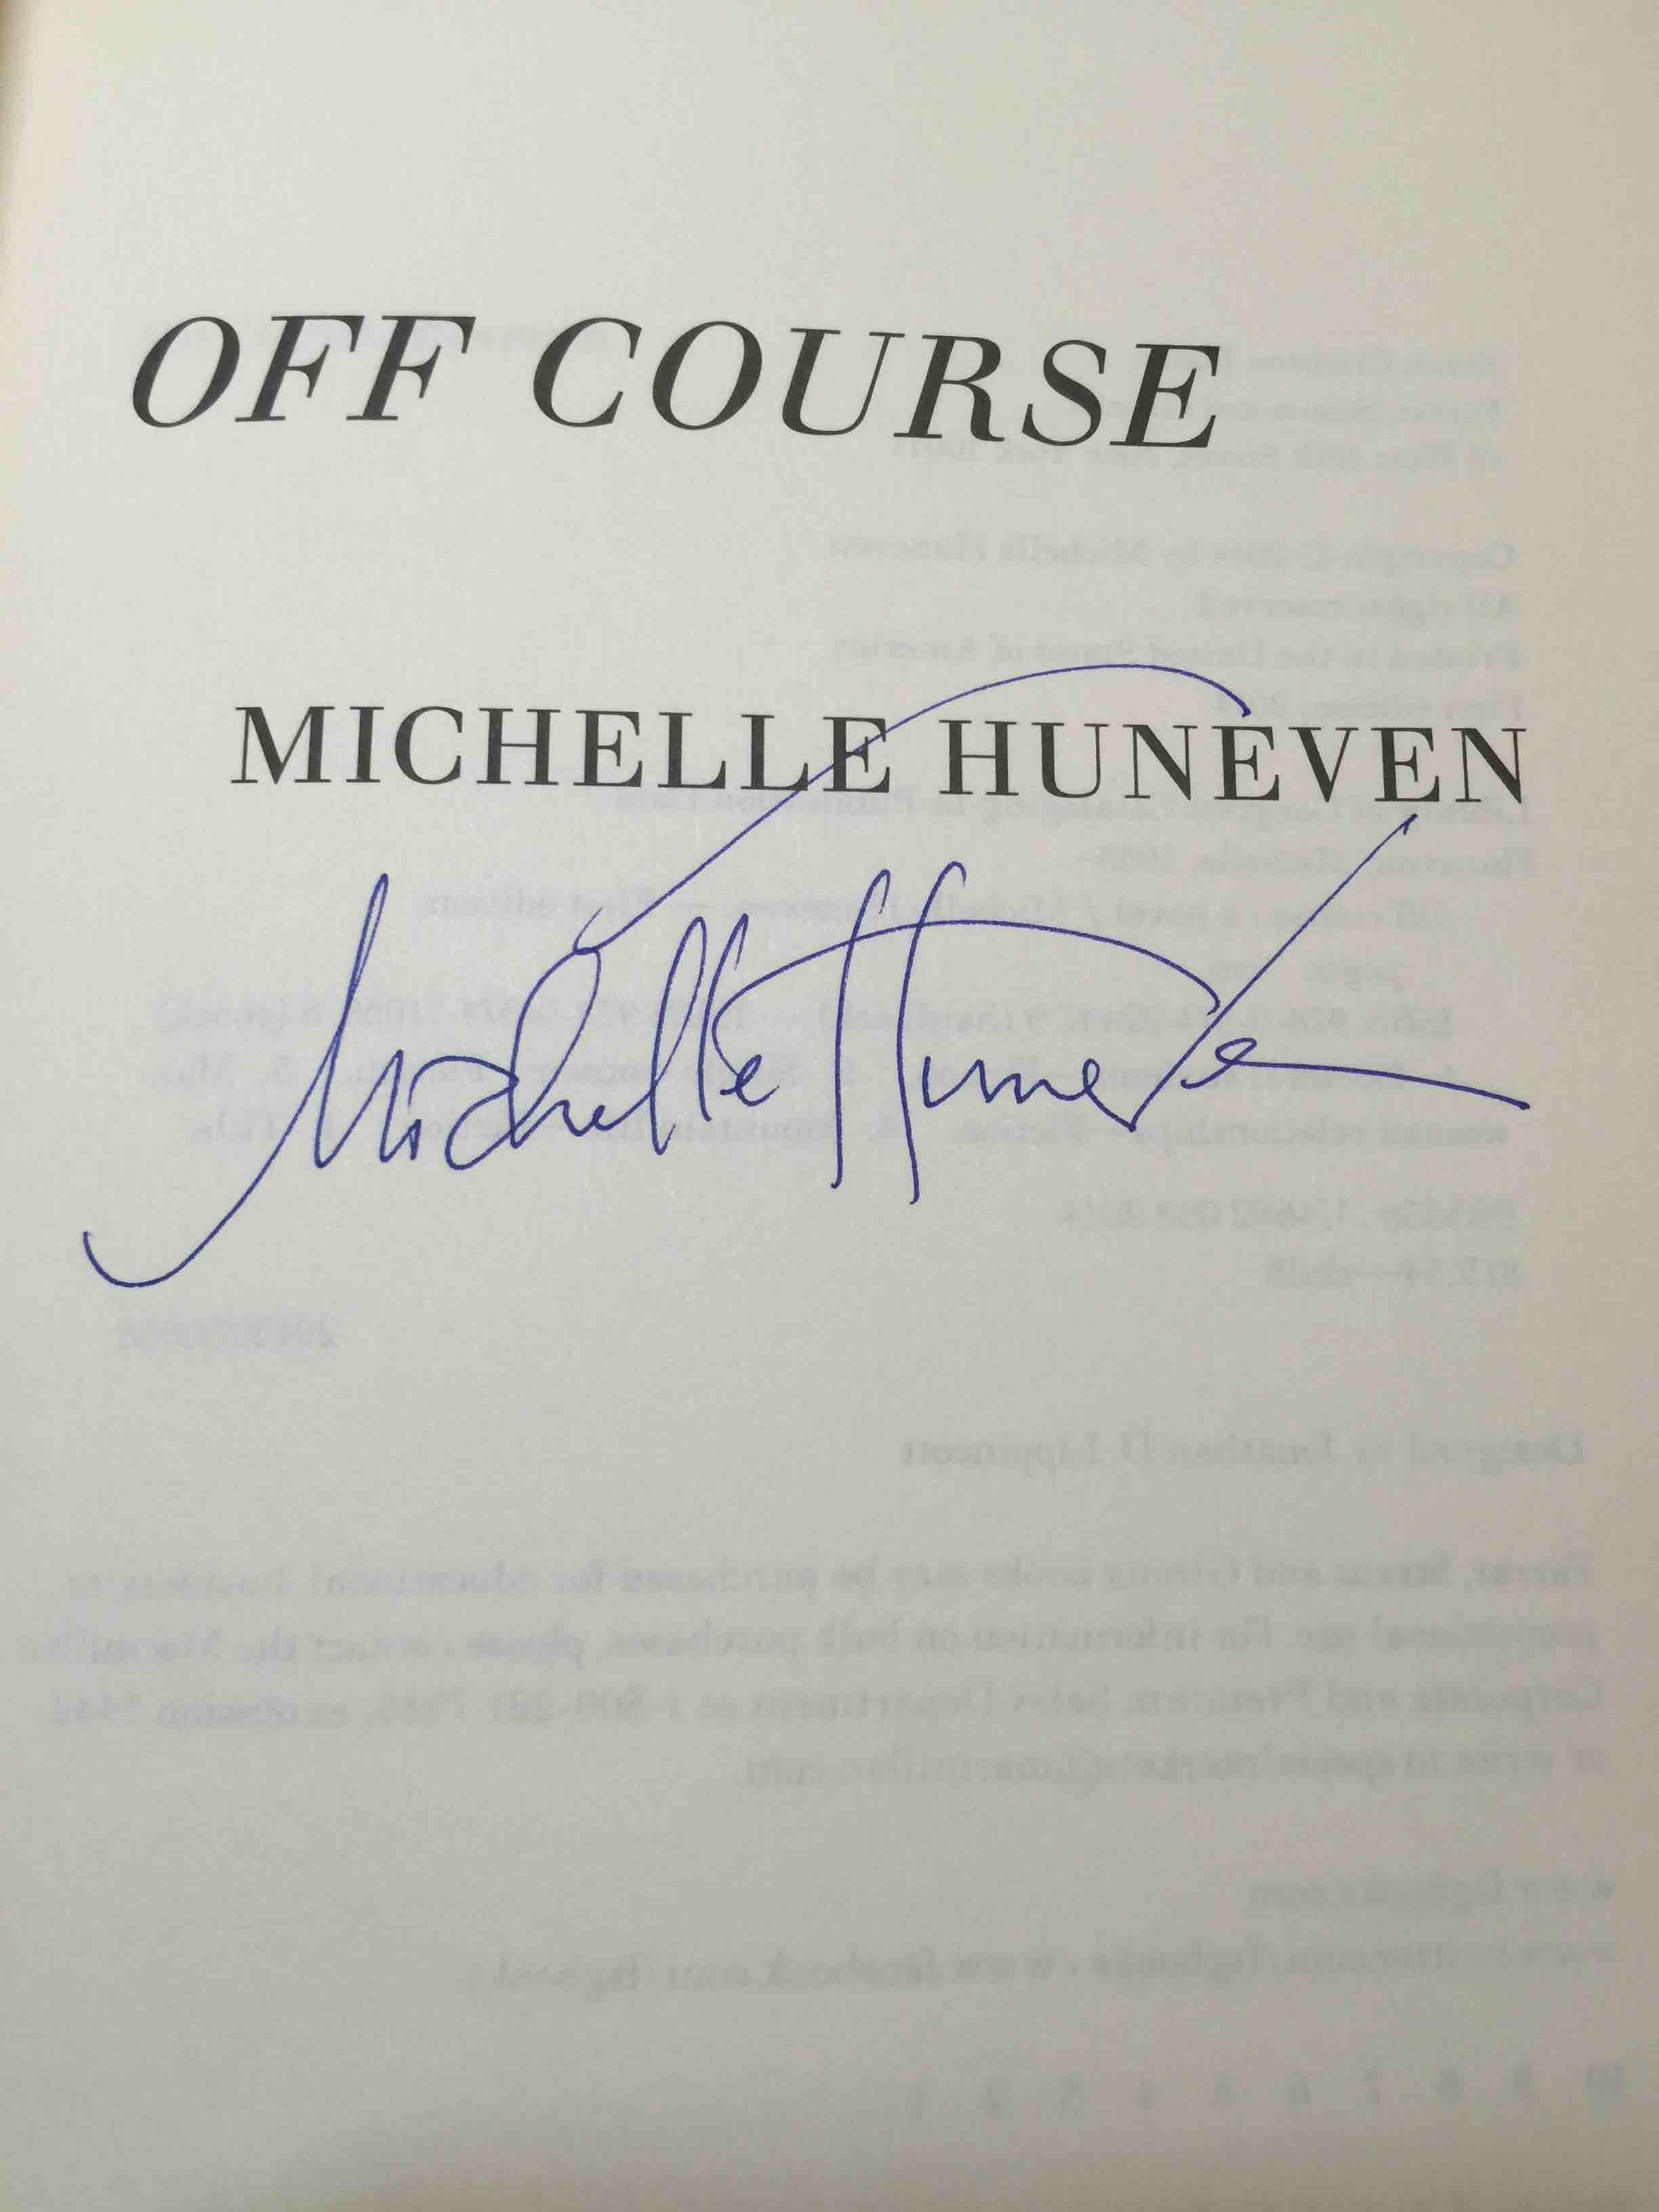 HUNEVEN, MICHELLE. - OFF COURSE.